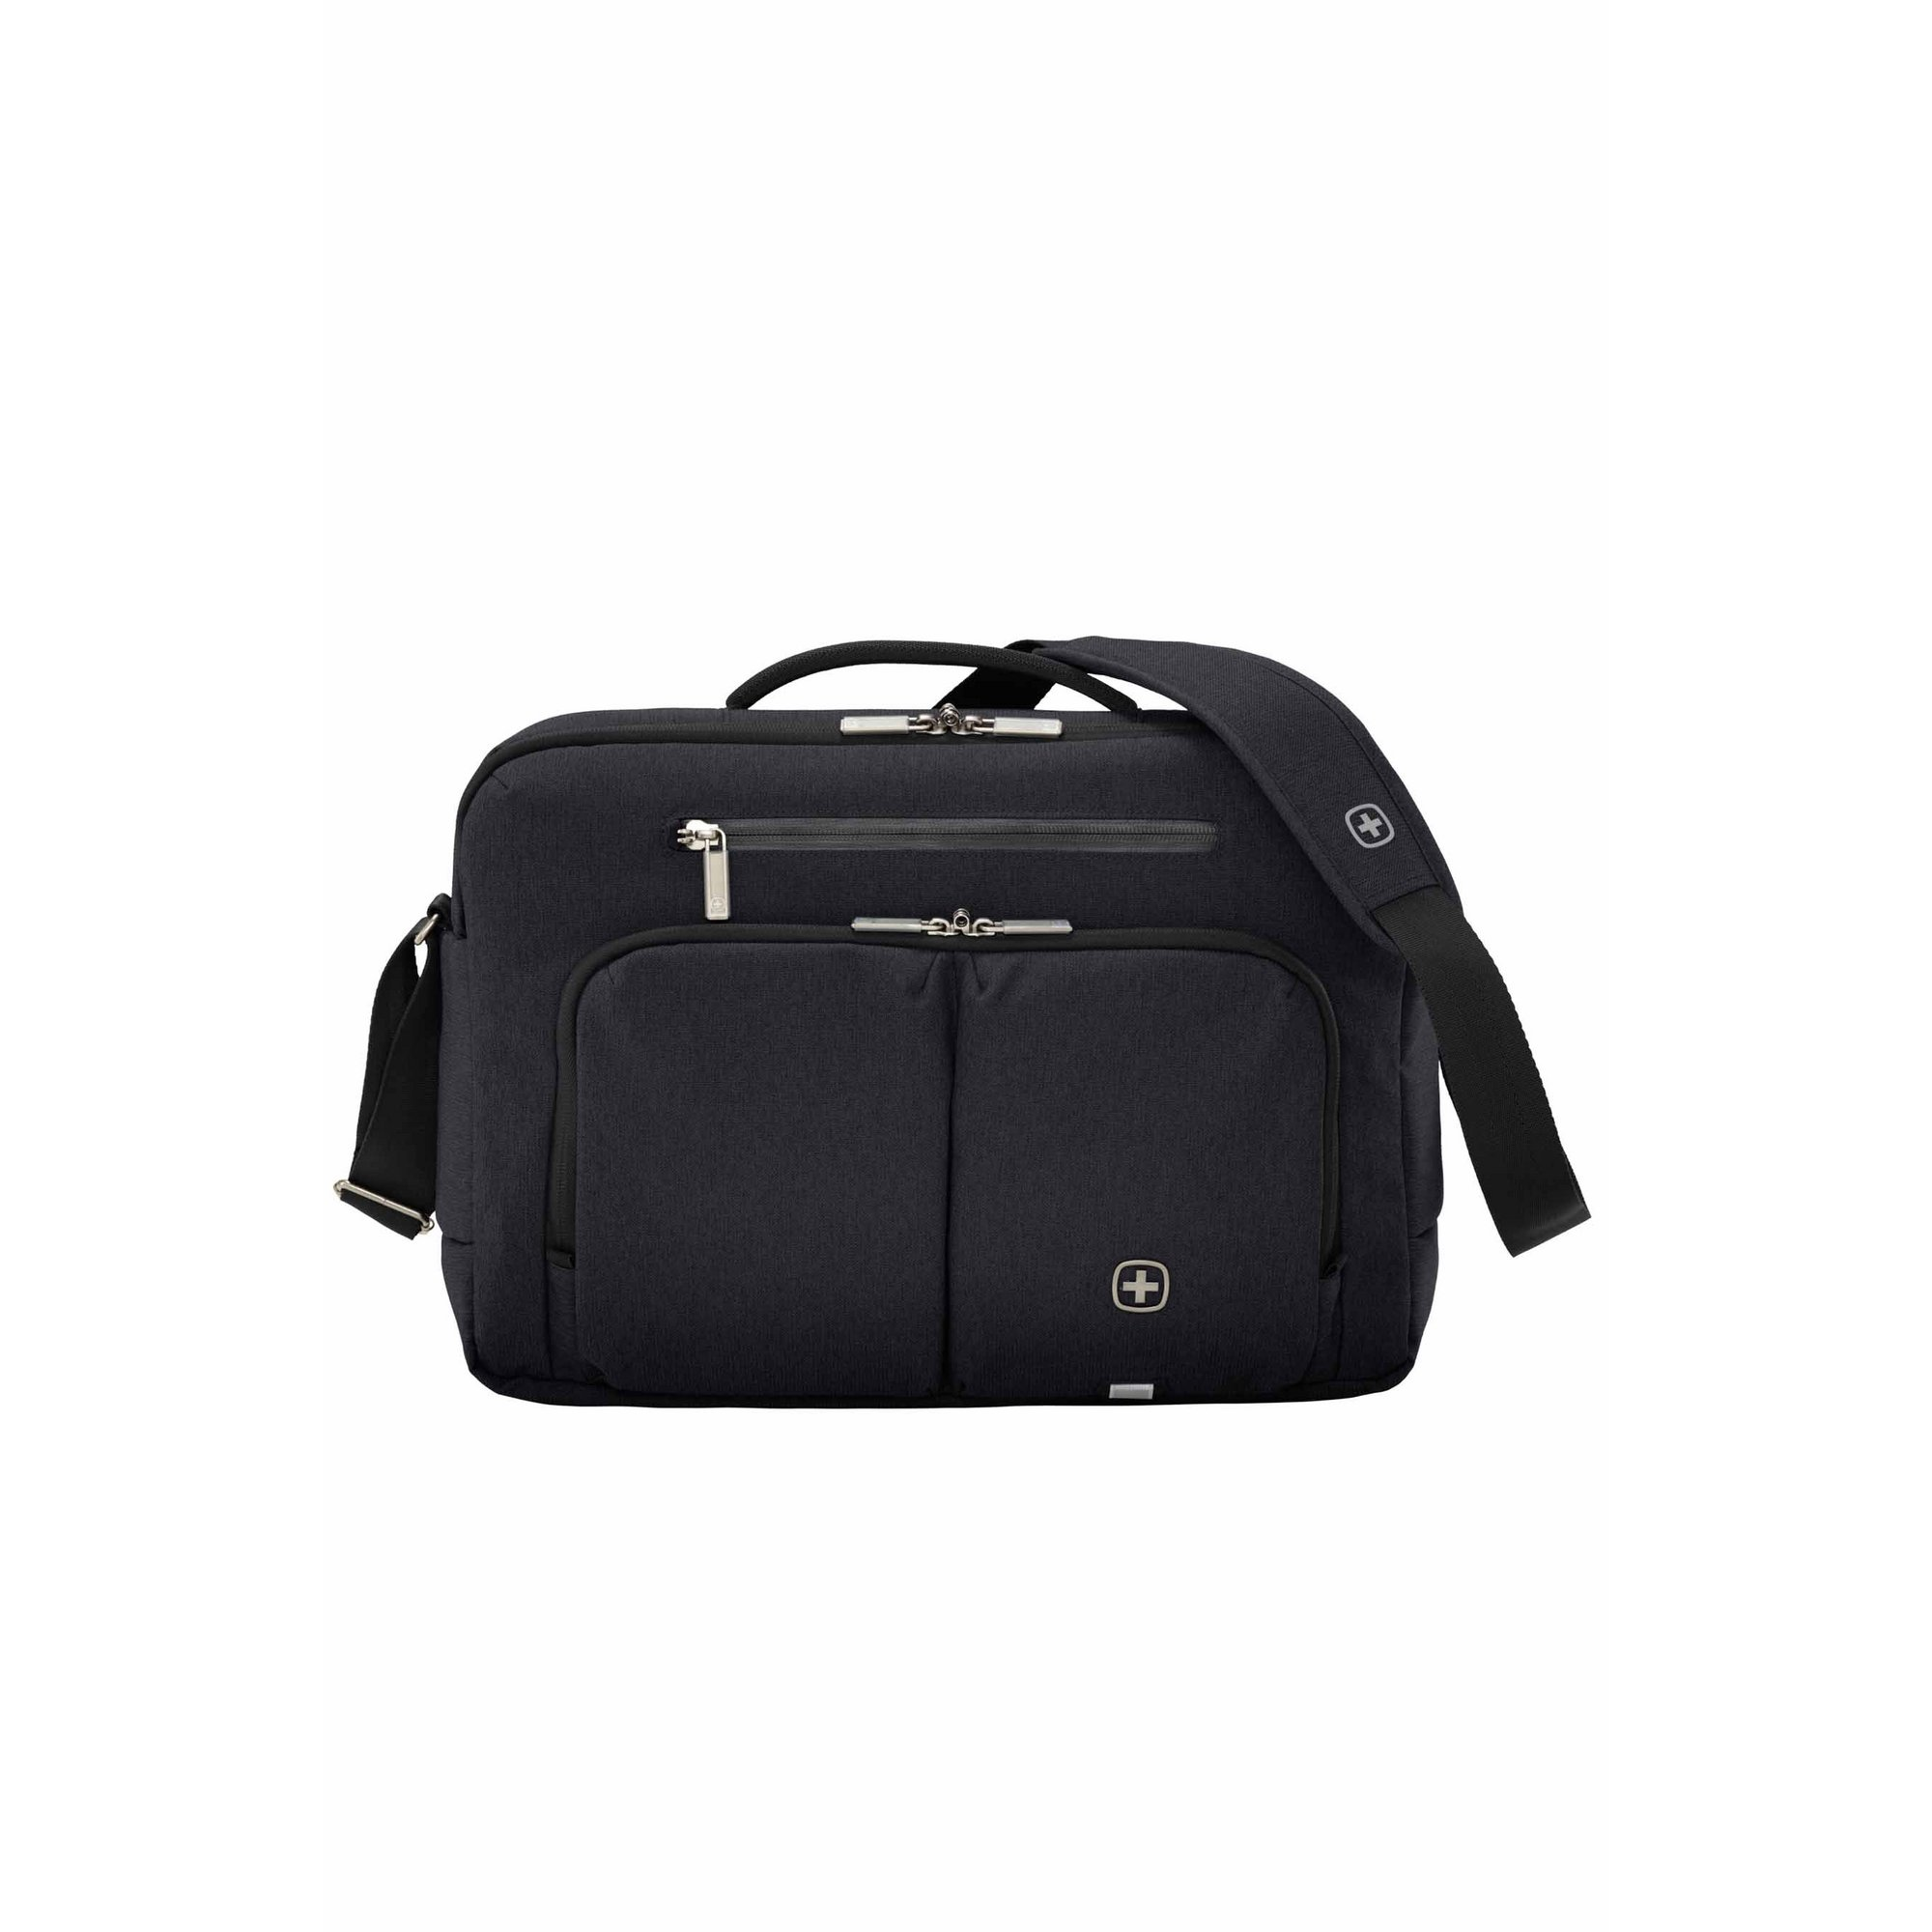 Image of Wenger City Stream Laptop Bag